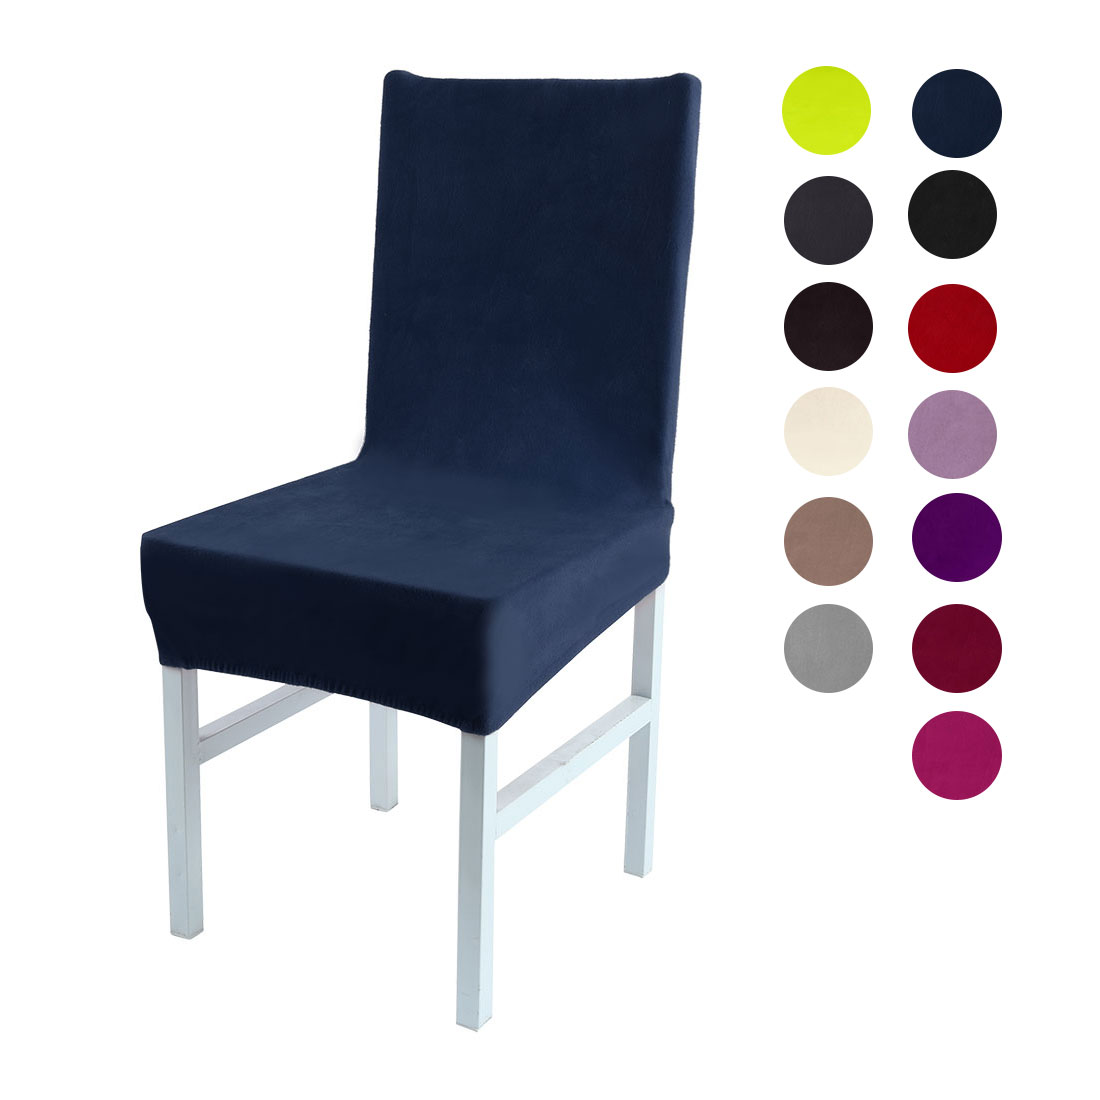 dining room chair covers walmart.ca average cover rental price unique bargains stretch thicken plush short